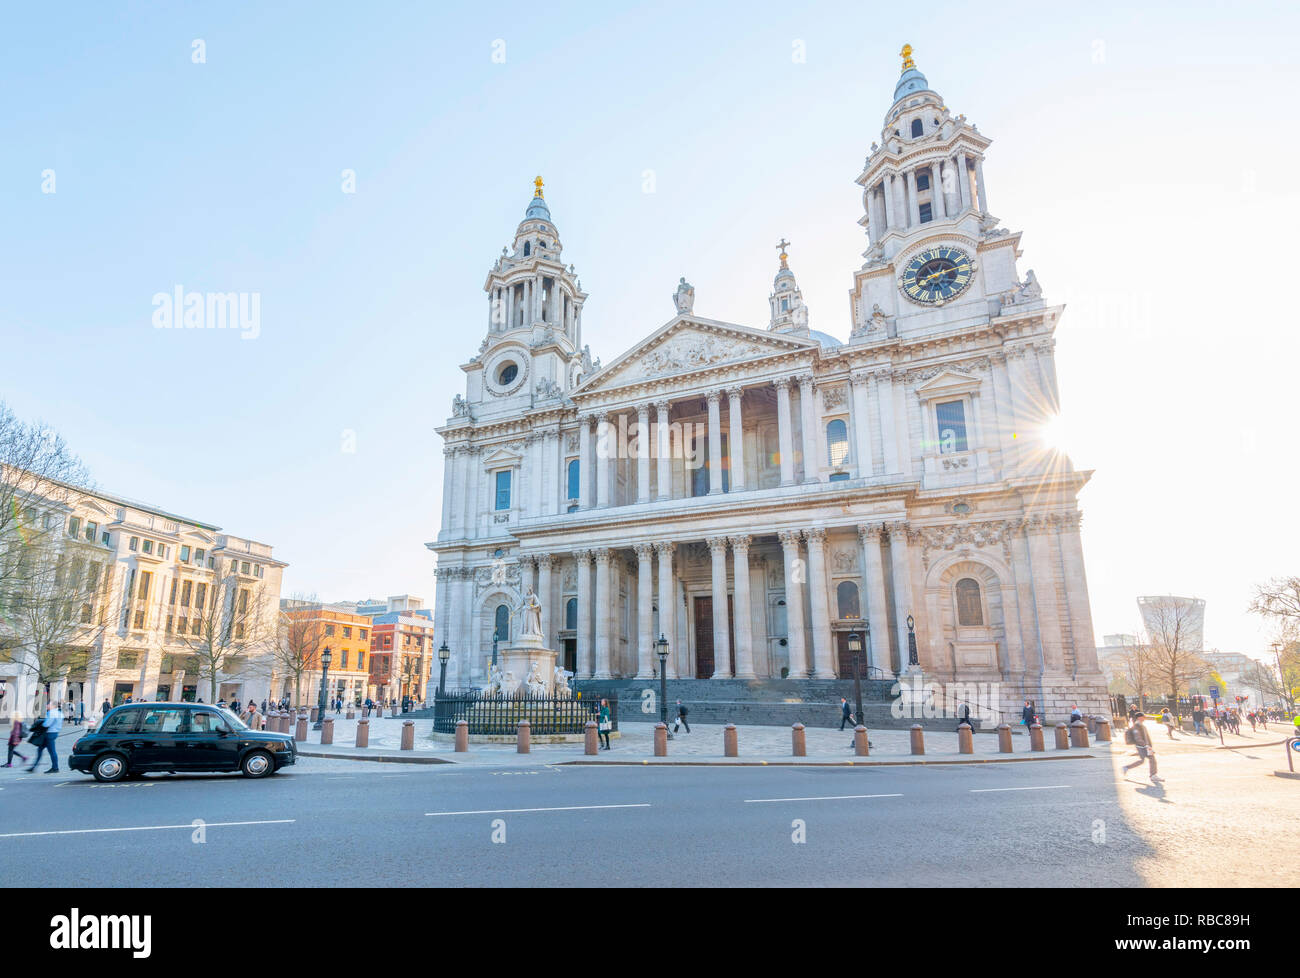 UK, England, London, Ludgate Hill, St. Paul's Cathedral - Stock Image